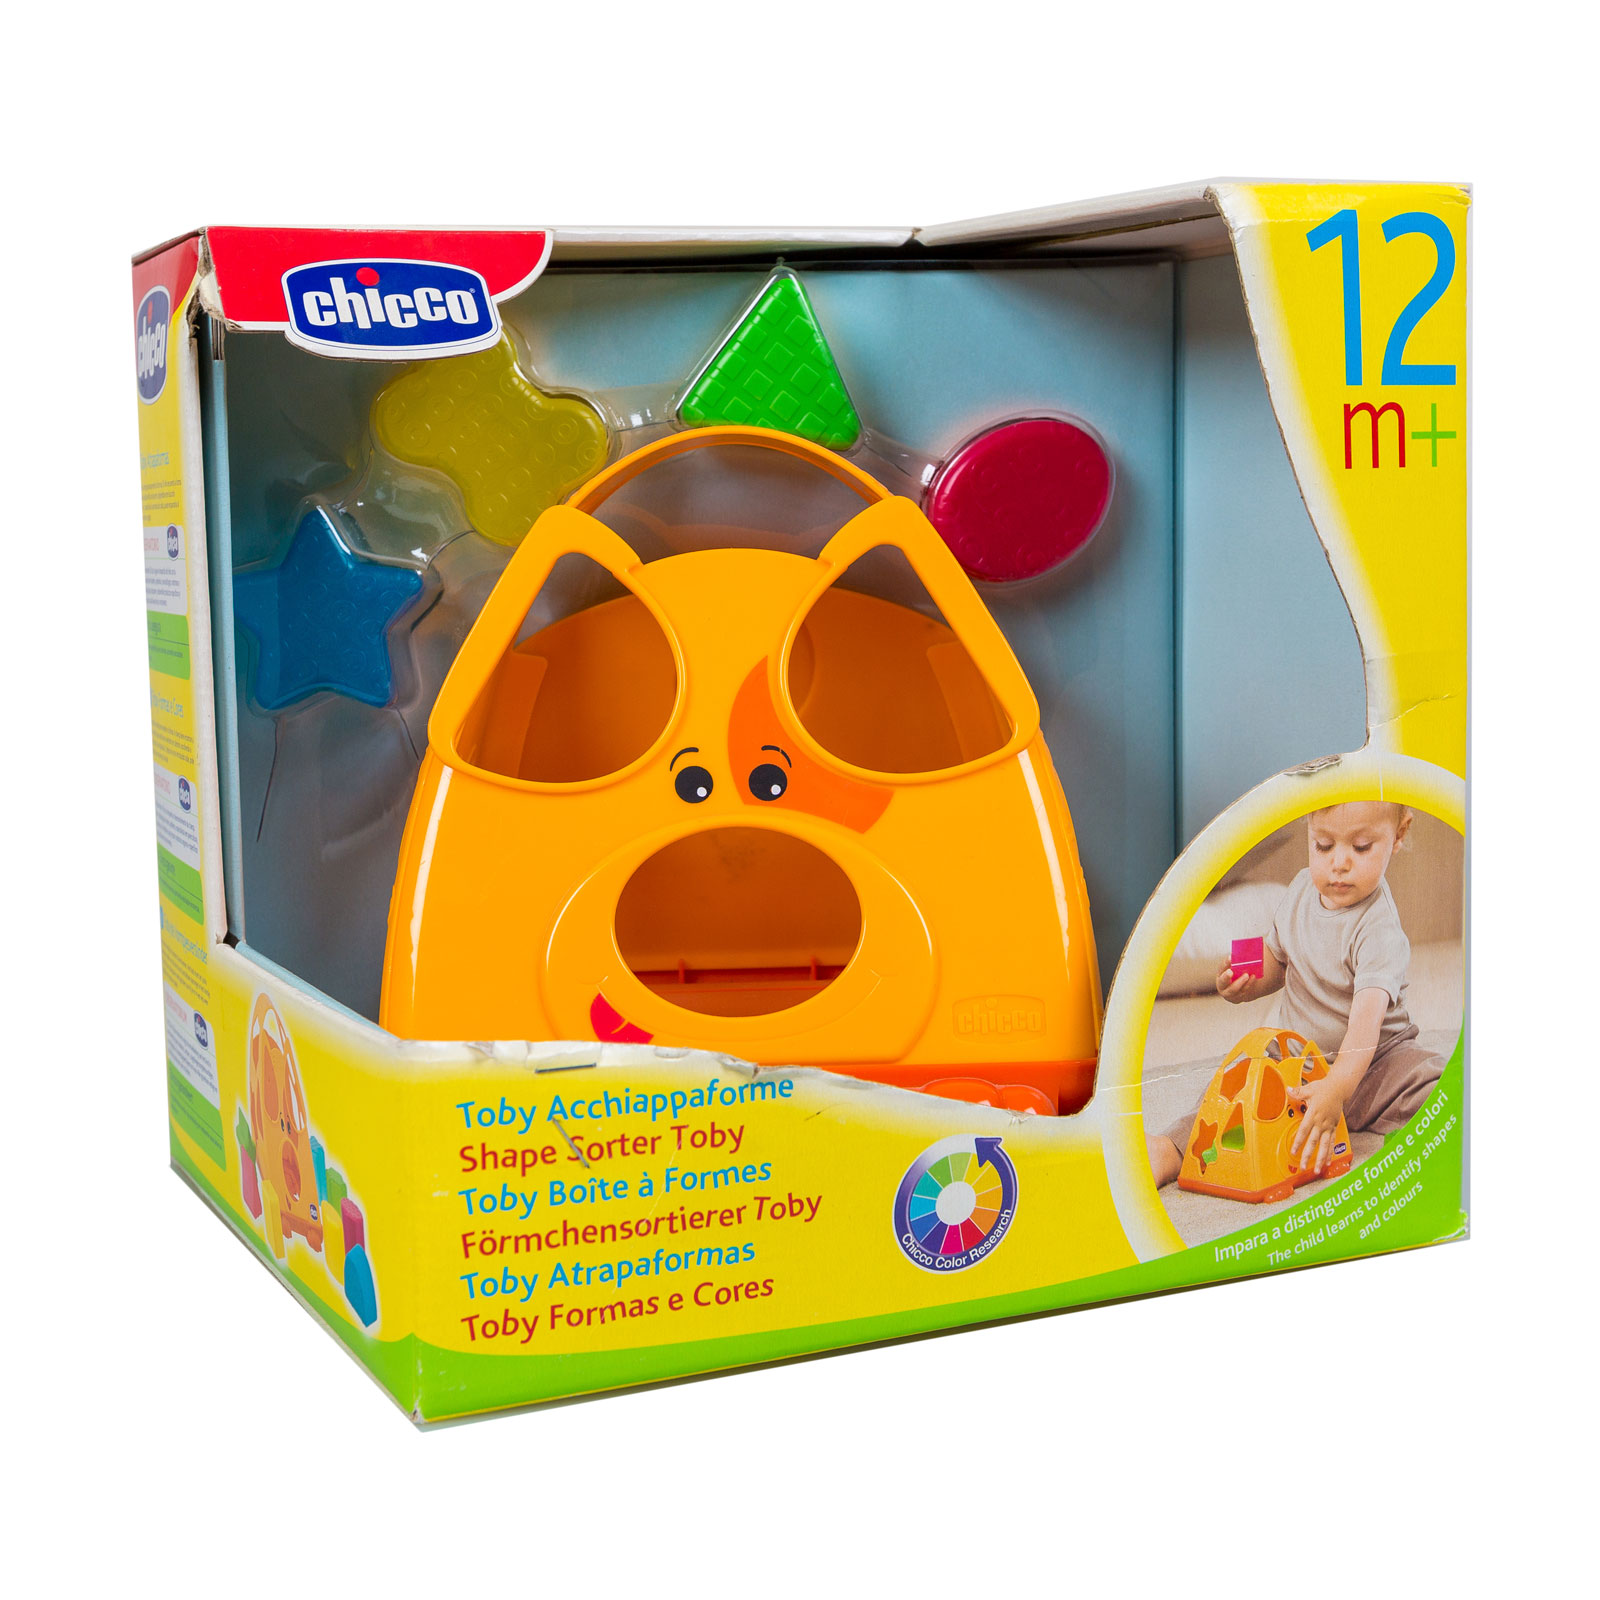 ����������� ������� Chicco ���� � 12 ���. (������)